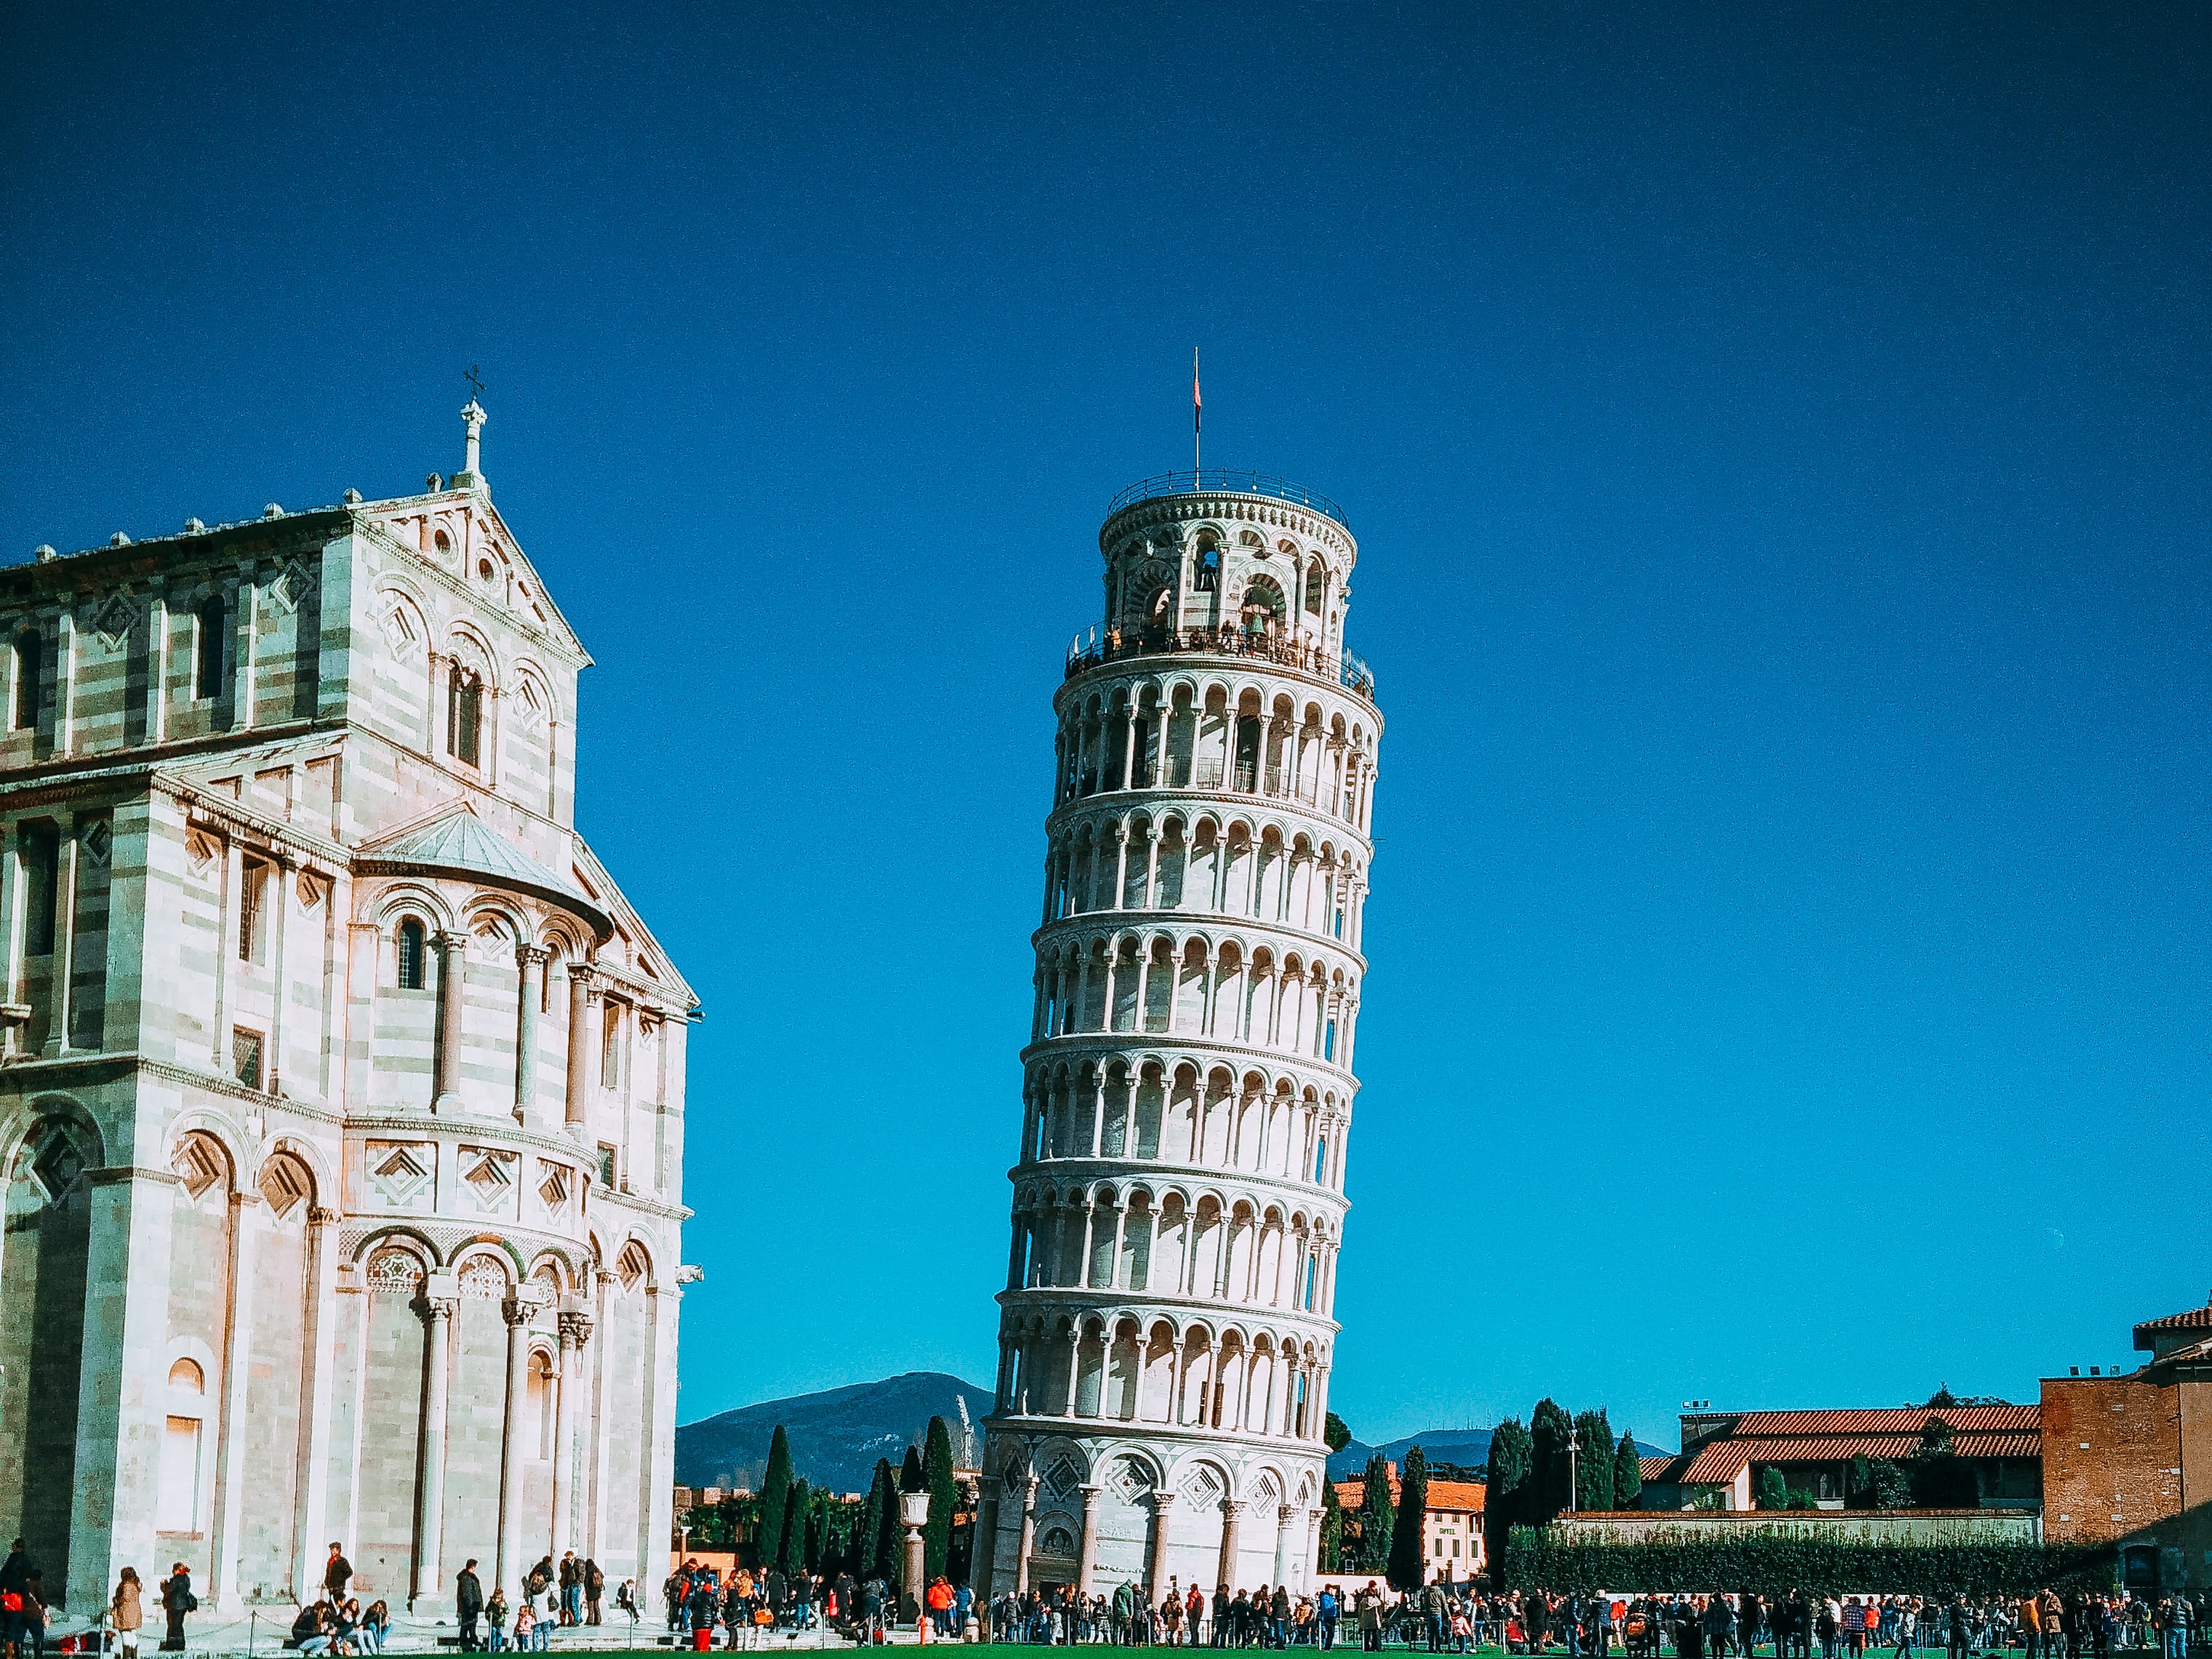 italy, leaning tower of pisa, pisa